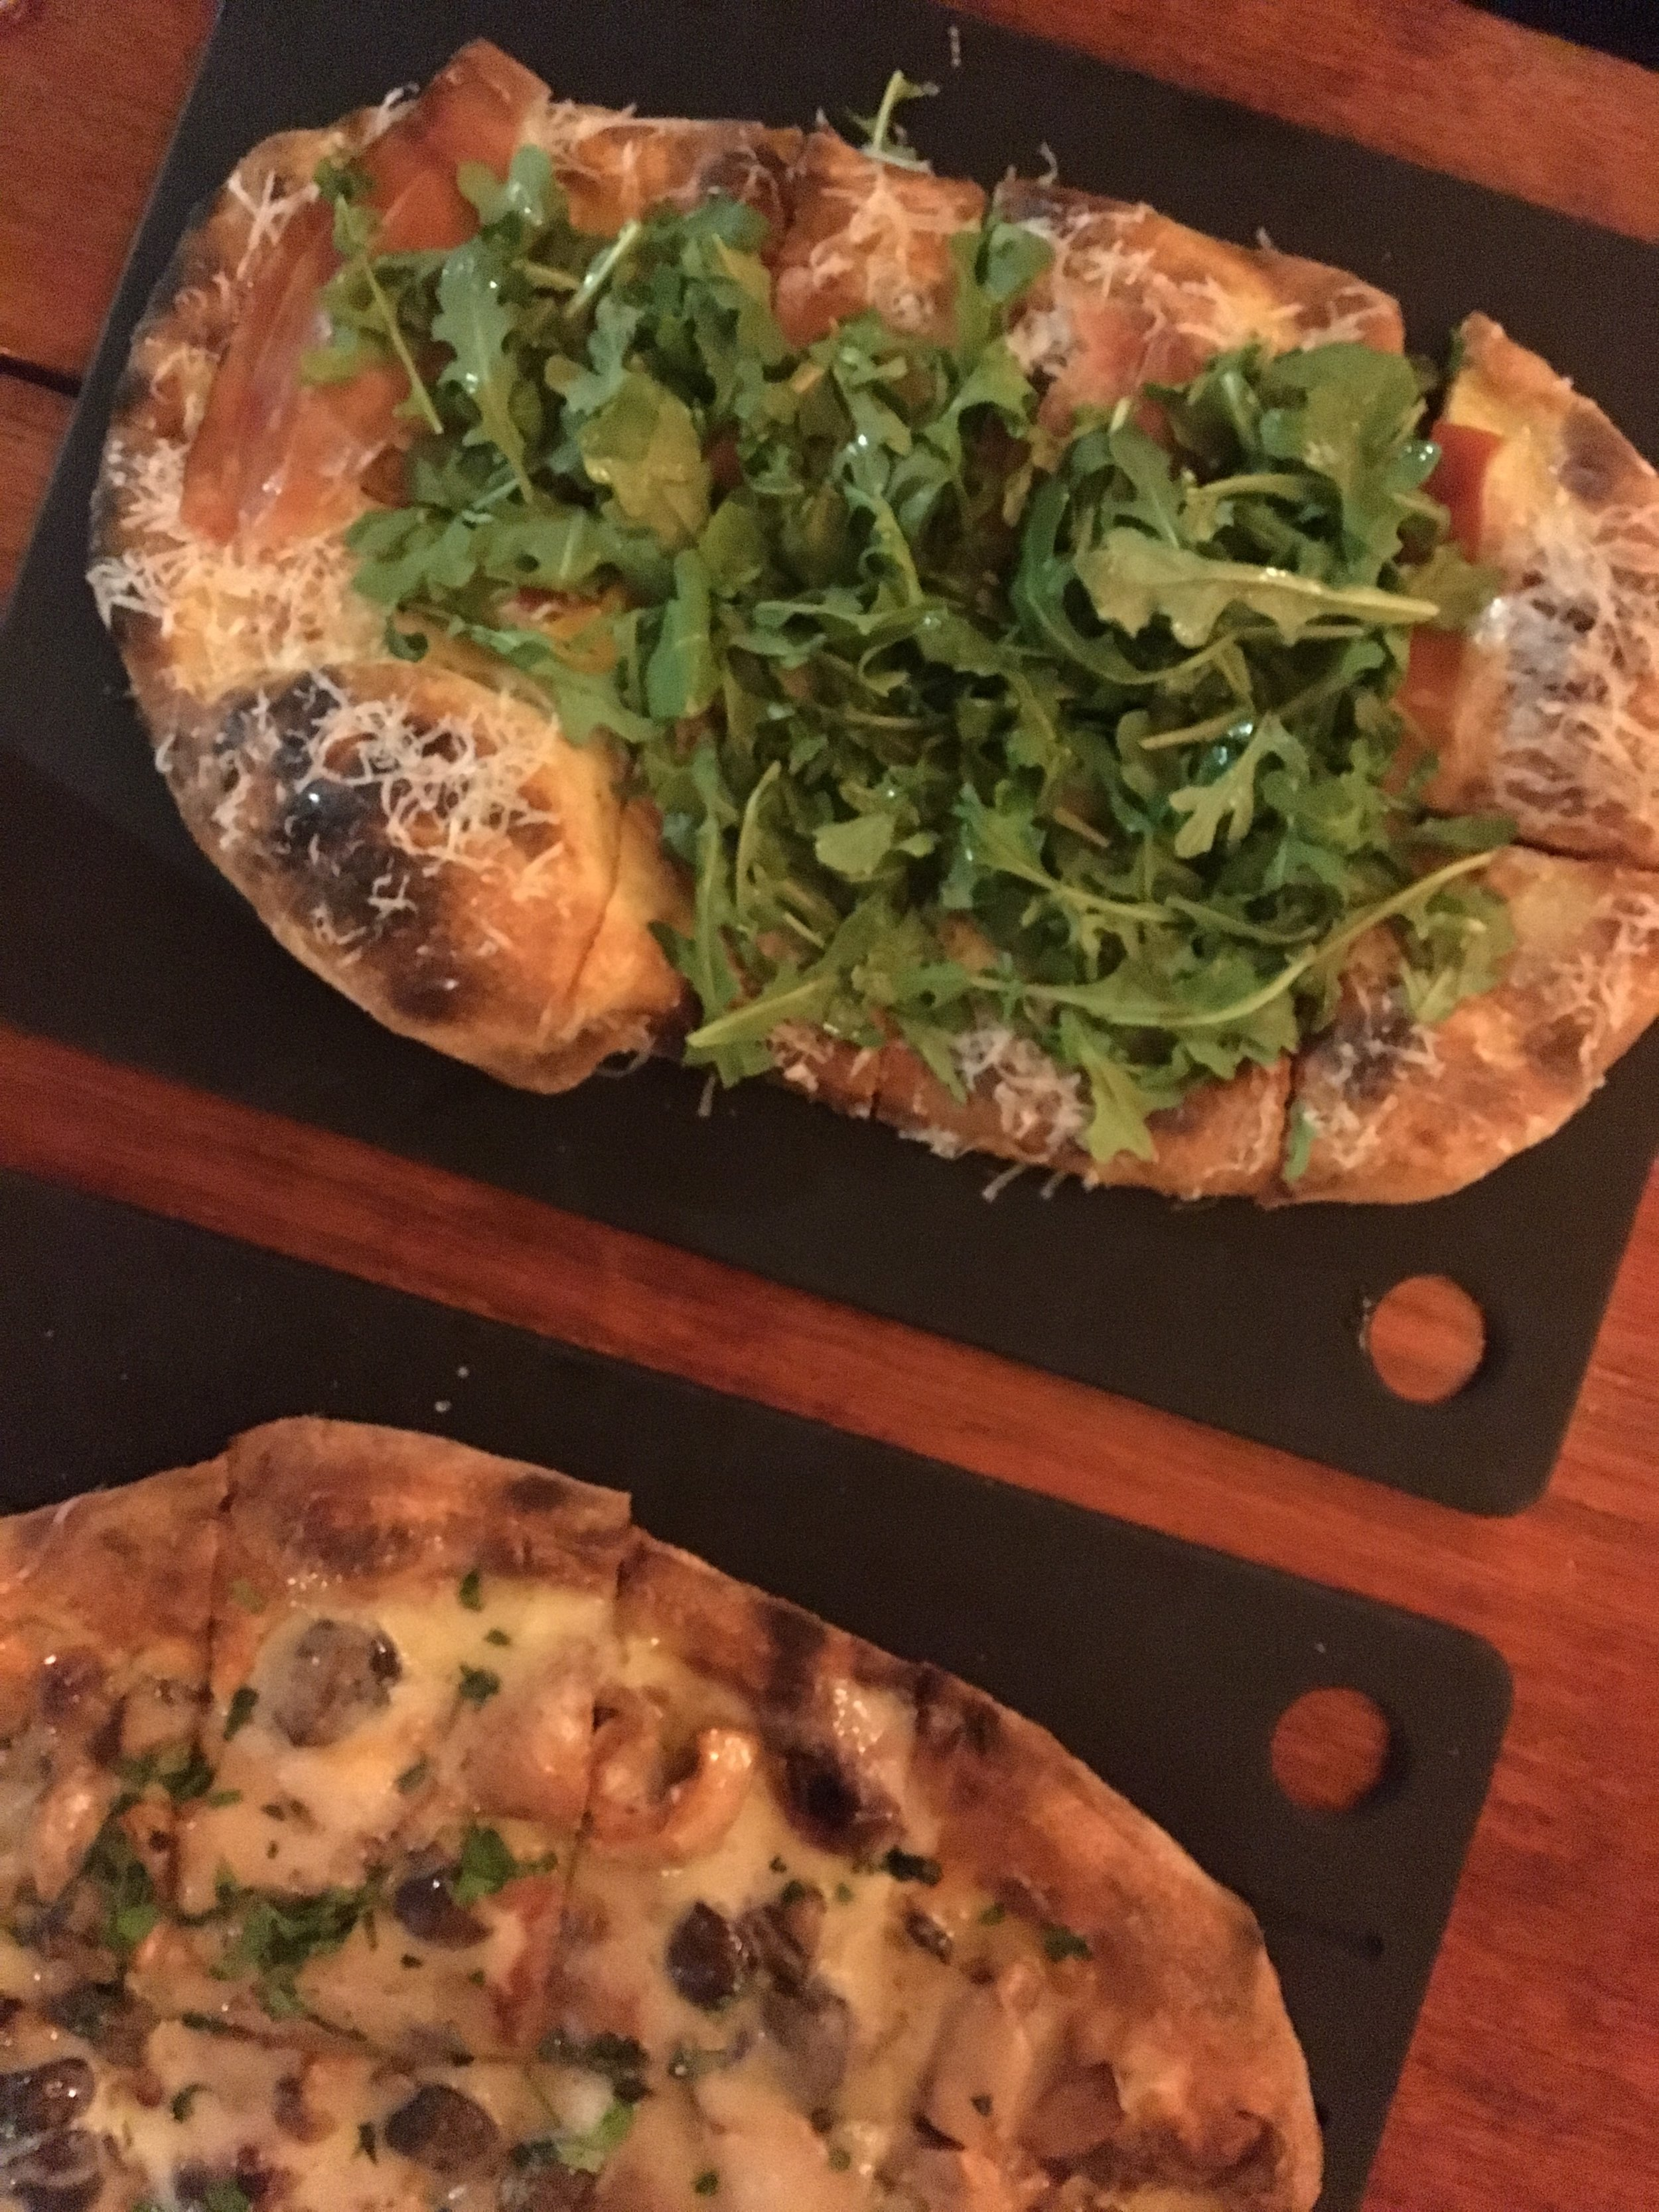 One night, I was seriously craving pizza. So Dan did a little research and found a place called  Serious Pie . It really hit the spot. We shared the roasted seasonal mushrooms with truffle cheese (my choice) and the soft egg, smoked prosciutto, local greens and pecorino sardo.